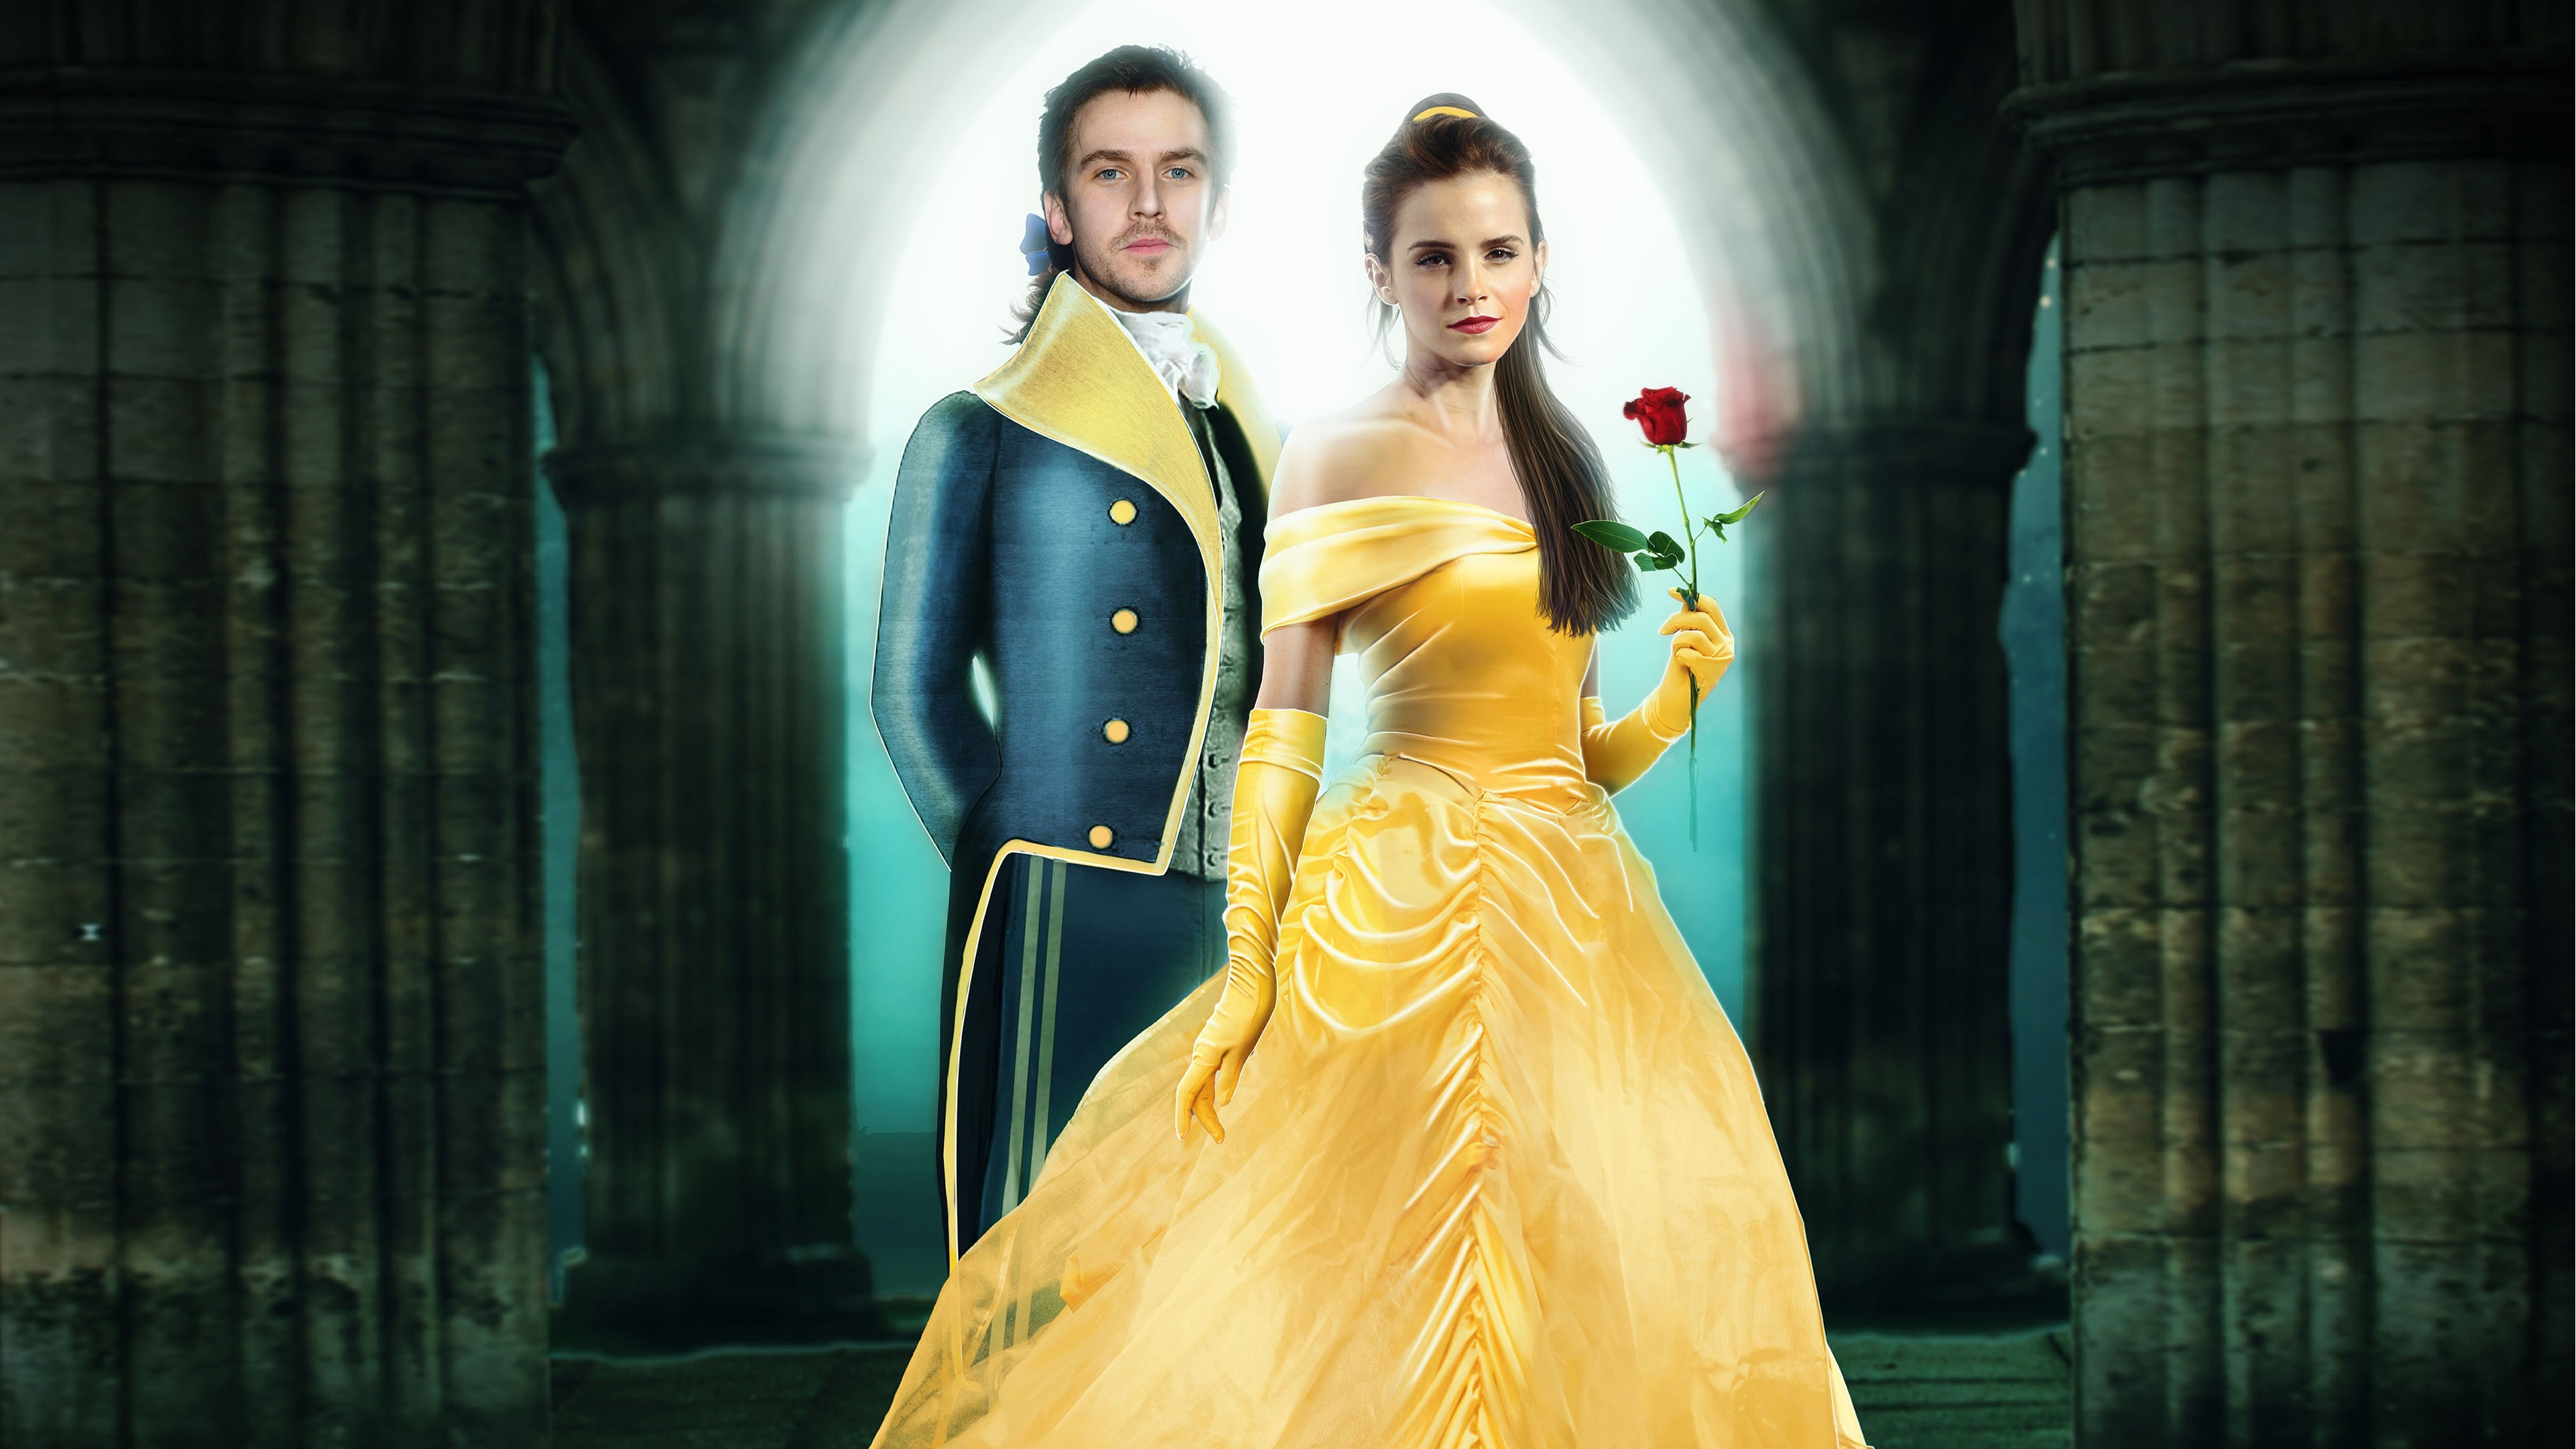 emma watson beauty and the beast 4k wallpaper background